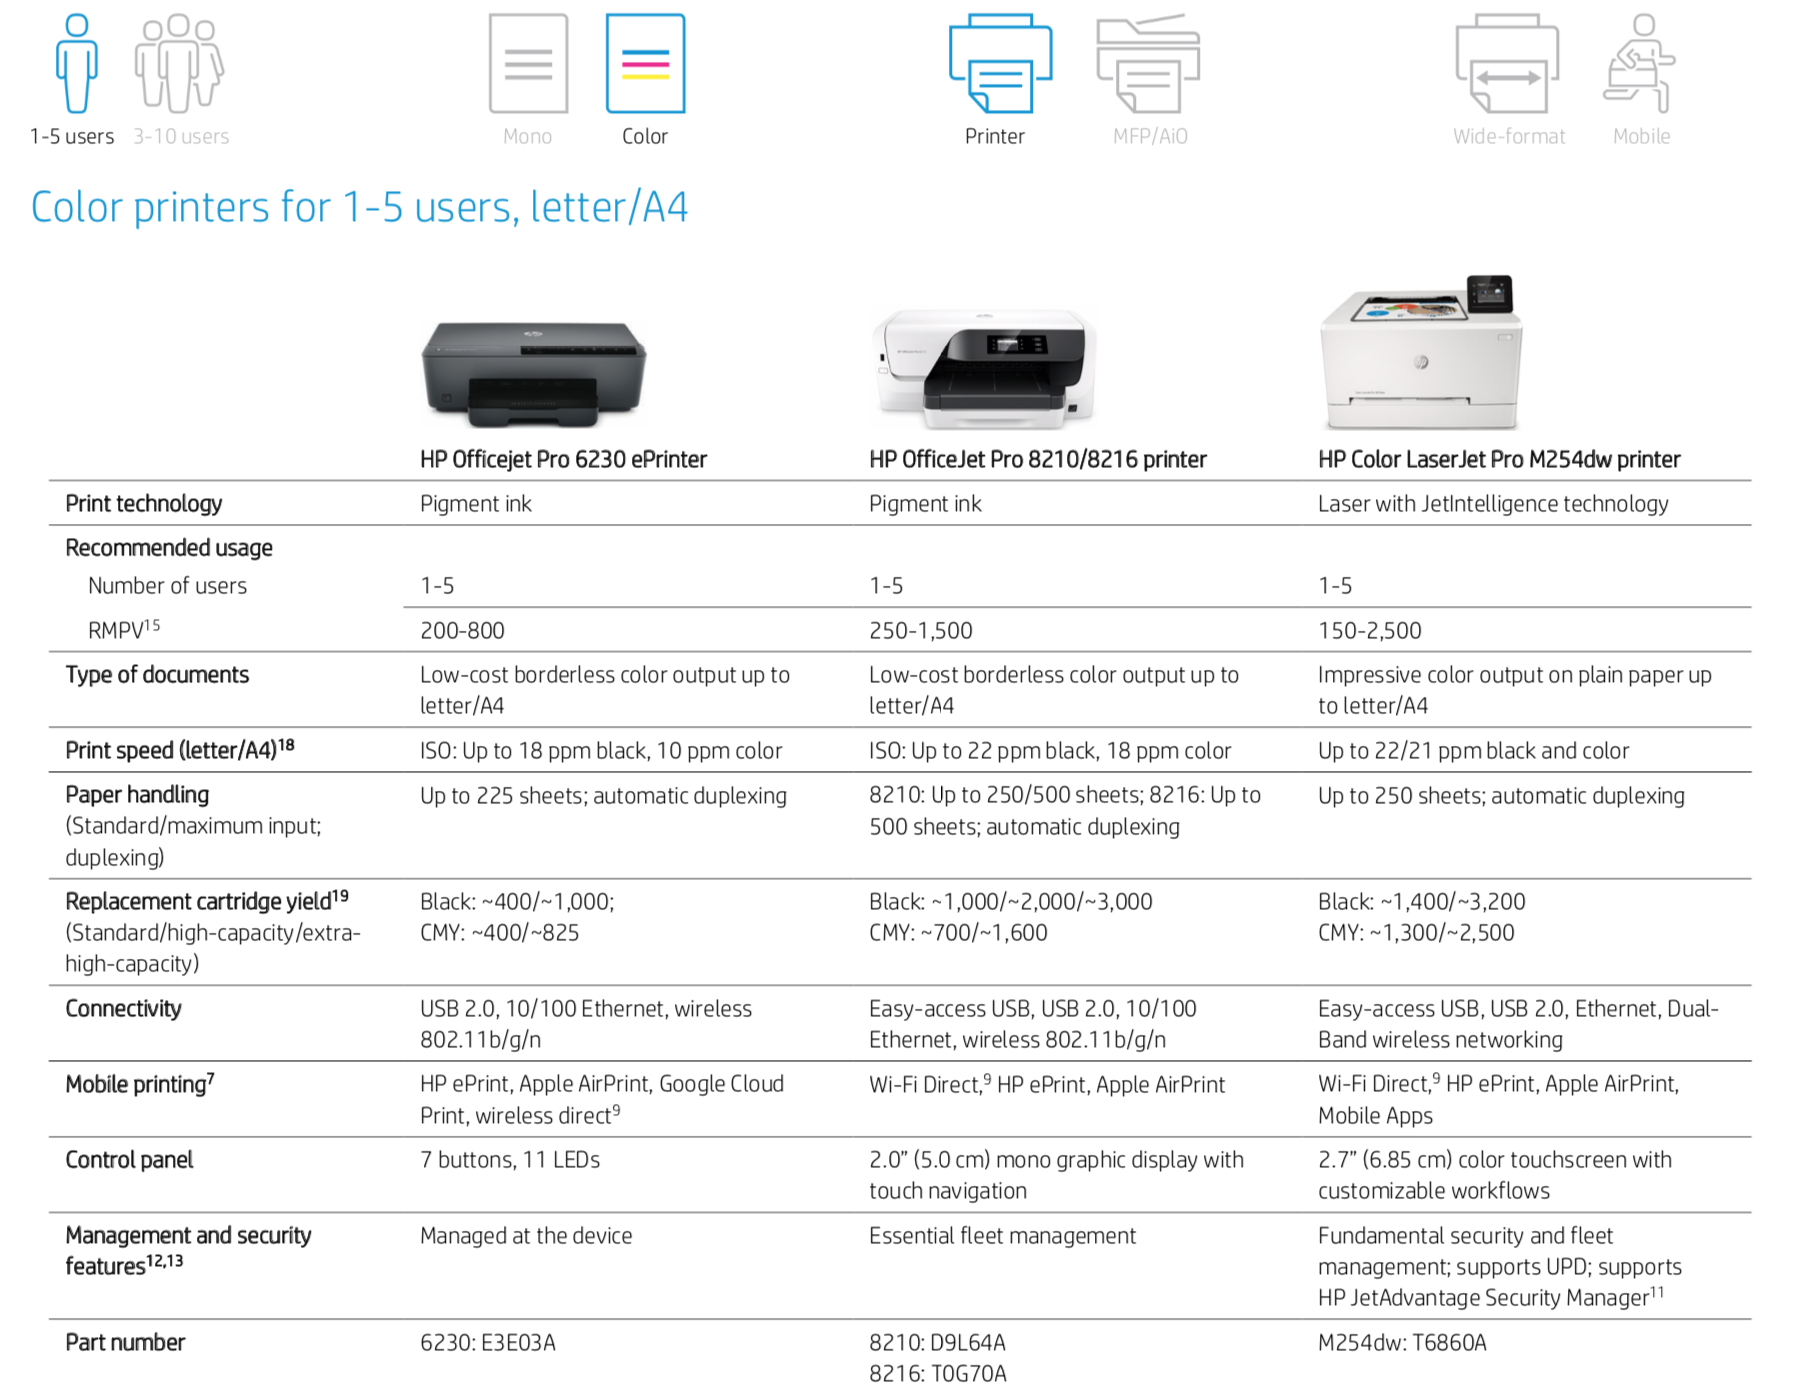 Color printers for 1-5 users